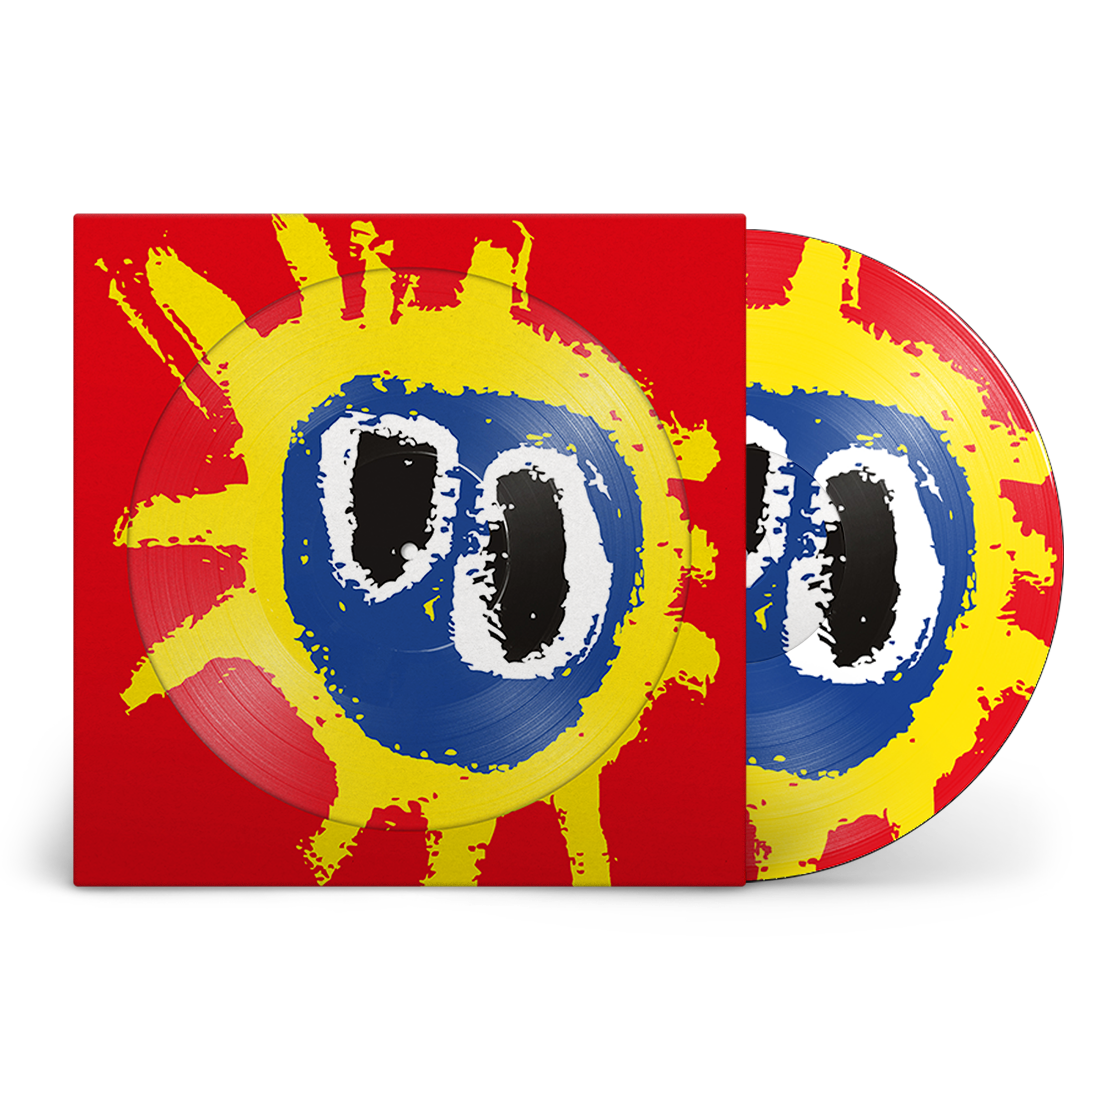 Primal Scream - Screamadelica Limited Edition Picture Disc